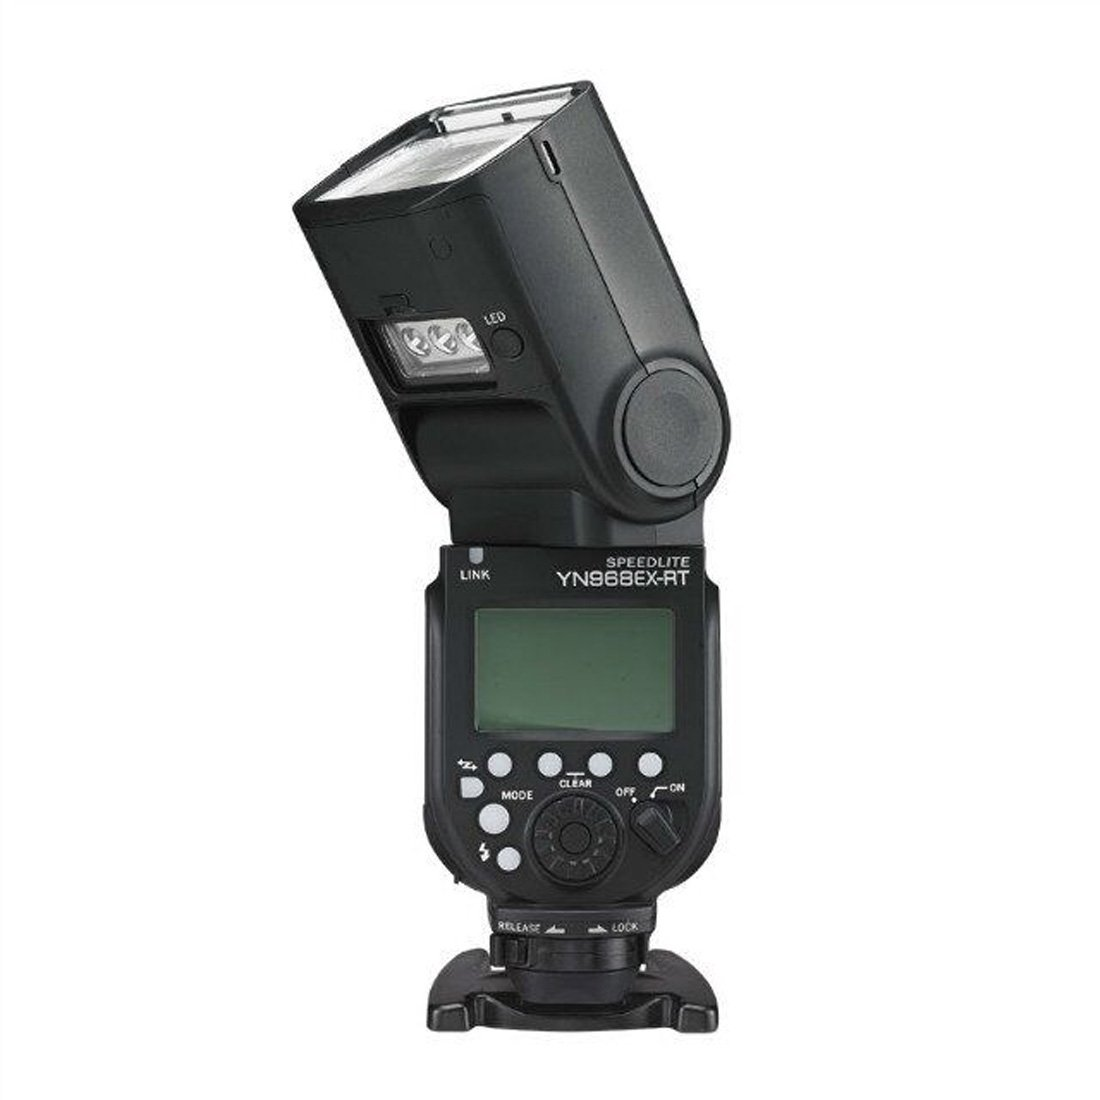 YONGNUO YN-968EX-RT GN60 1/8000s HSS Wireless TTL Speedlite for Canon EOS DSLR Camera, with MicroFiber Cloth